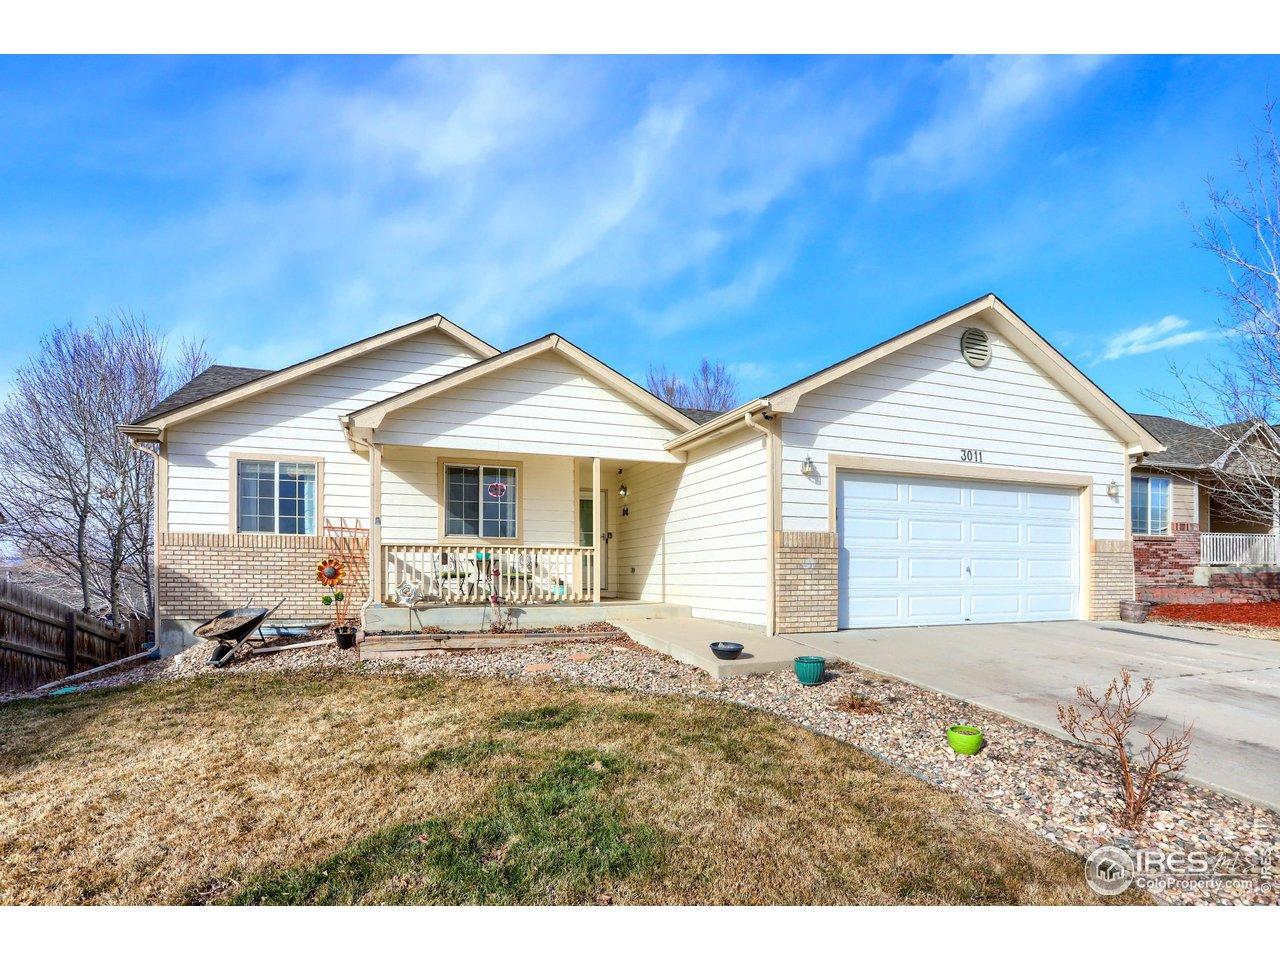 3011 45th Ave, Greeley CO 80634